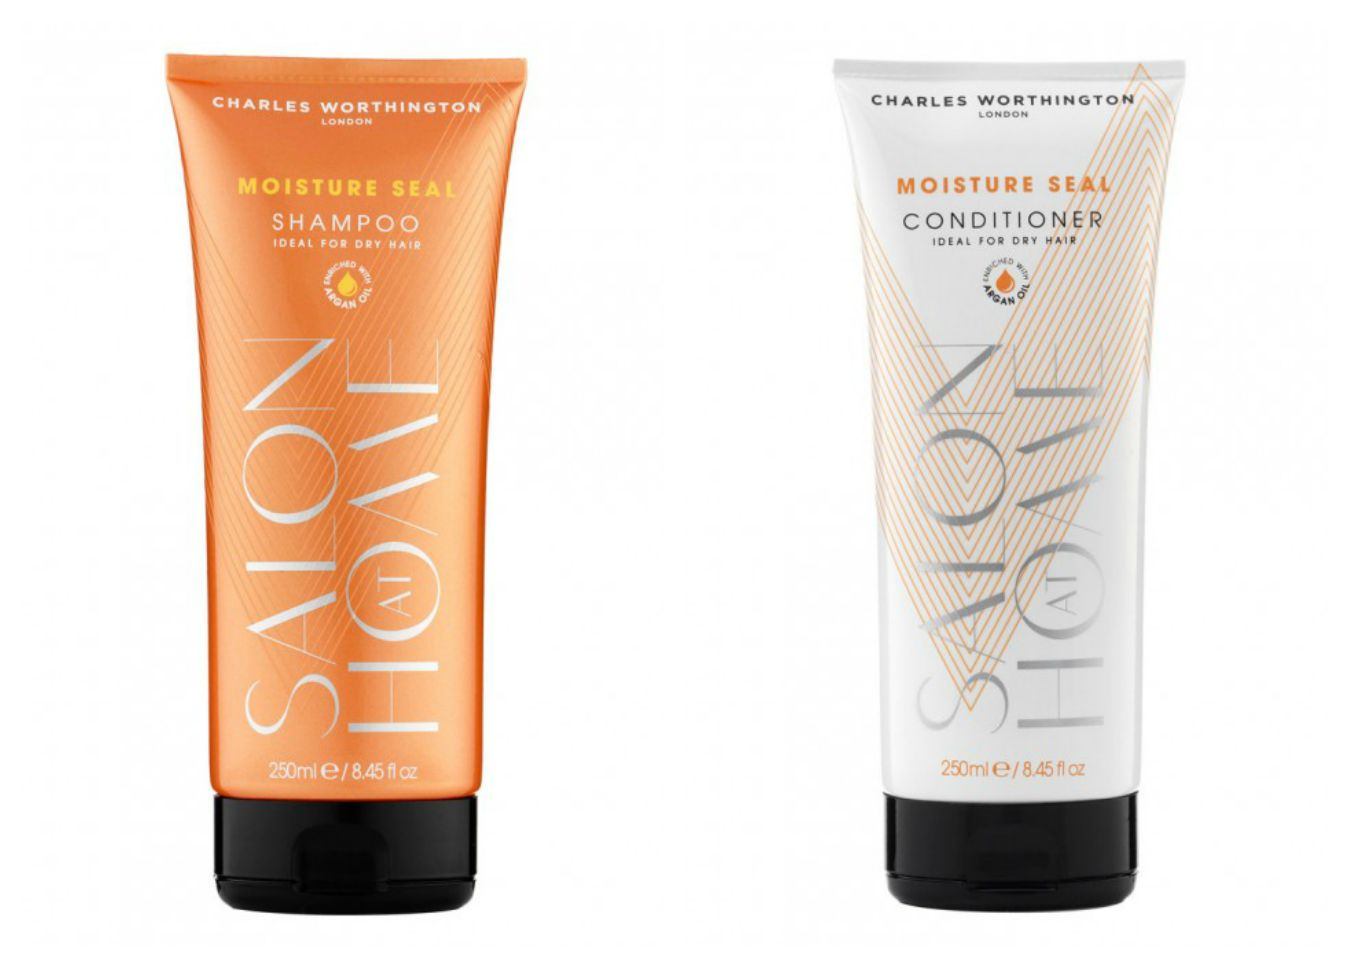 Charles Worthington Salon At Home Shampoo & Condition, available at Priceline Pharmacy.